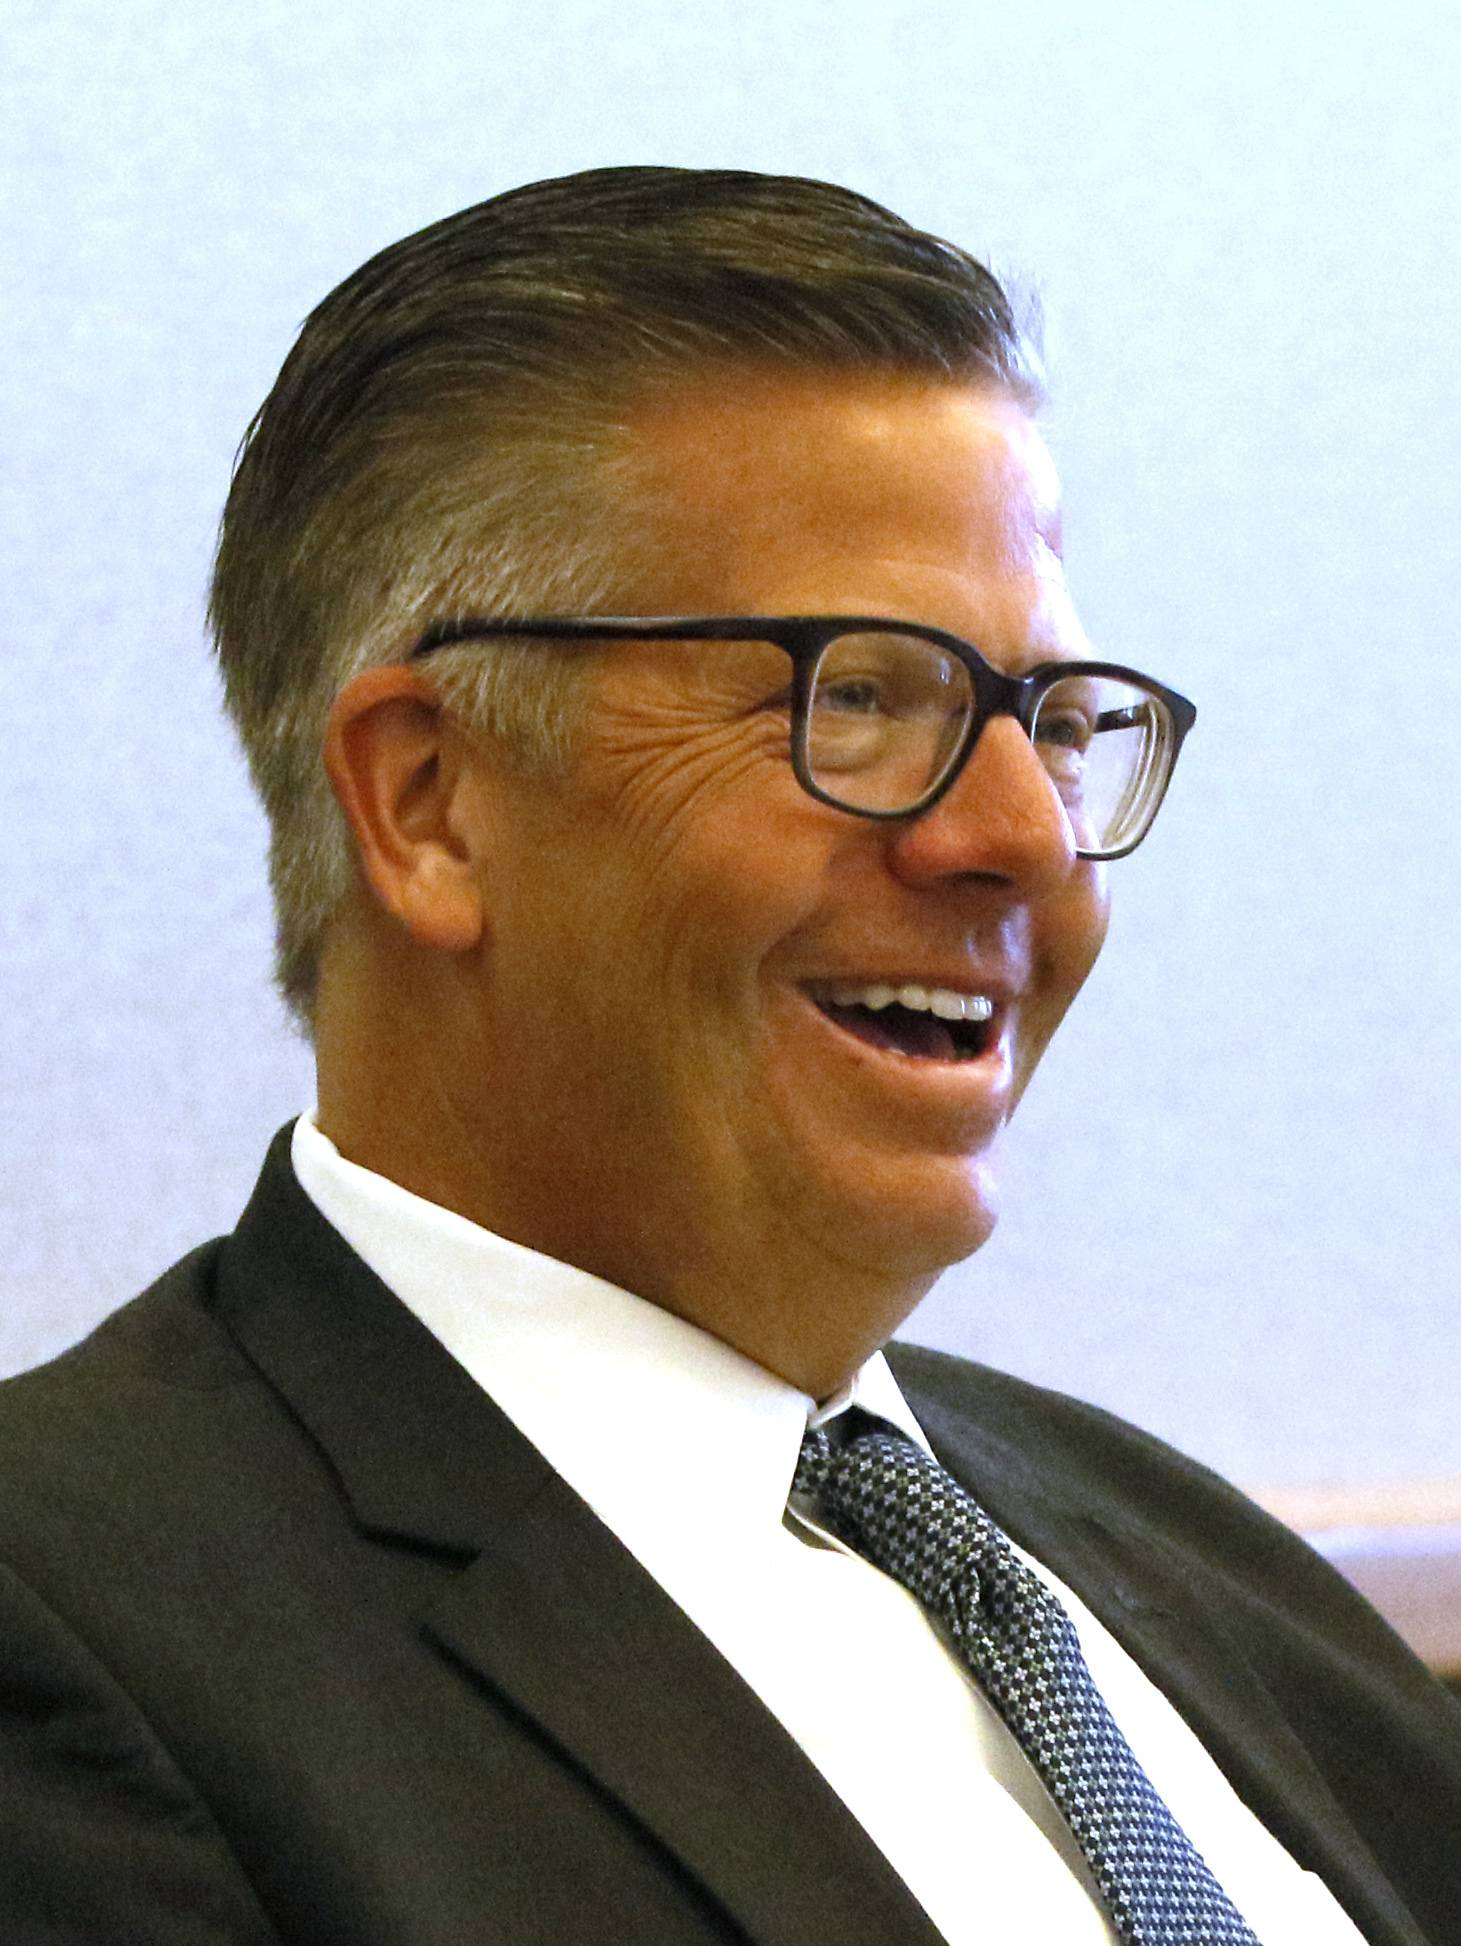 U.S. Rep. Randy Hultgren, a Plano Republican, meets Tuesday with Northern Illinois University officials at the school's Naperville campus to mark Startup Day Across America by hearing how educators are supporting innovative-minded students with new business ideas.